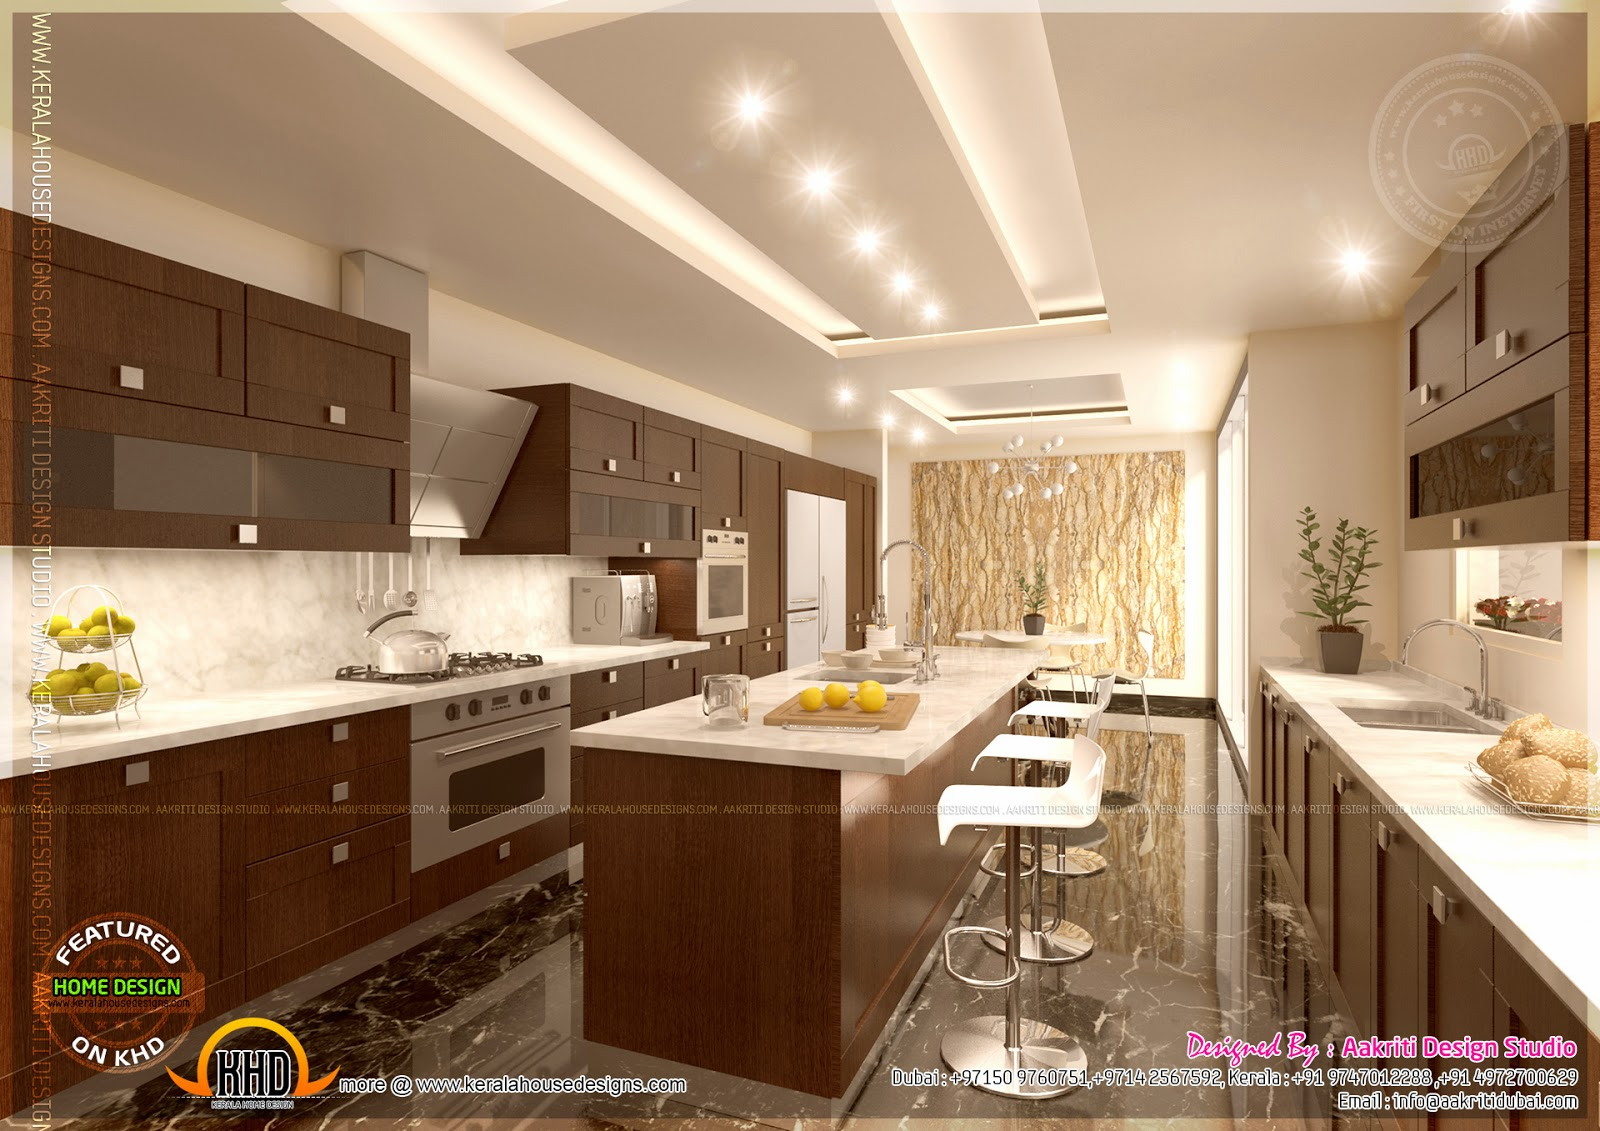 Kitchen designs by aakriti design studio kerala home design and floor plans Home interior design ideas for kitchen